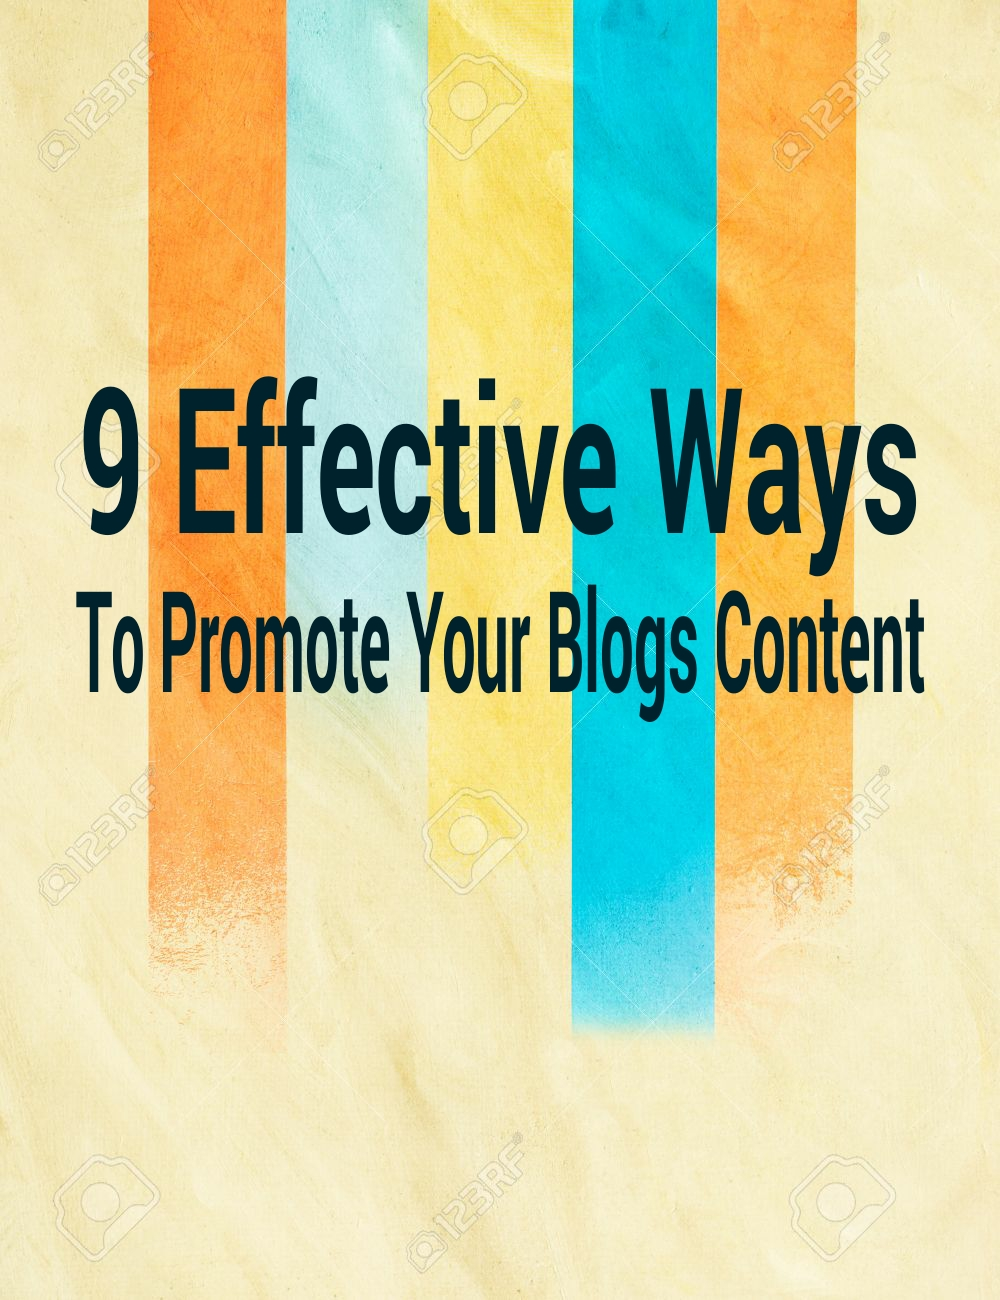 Effective ways to promote your blogs content